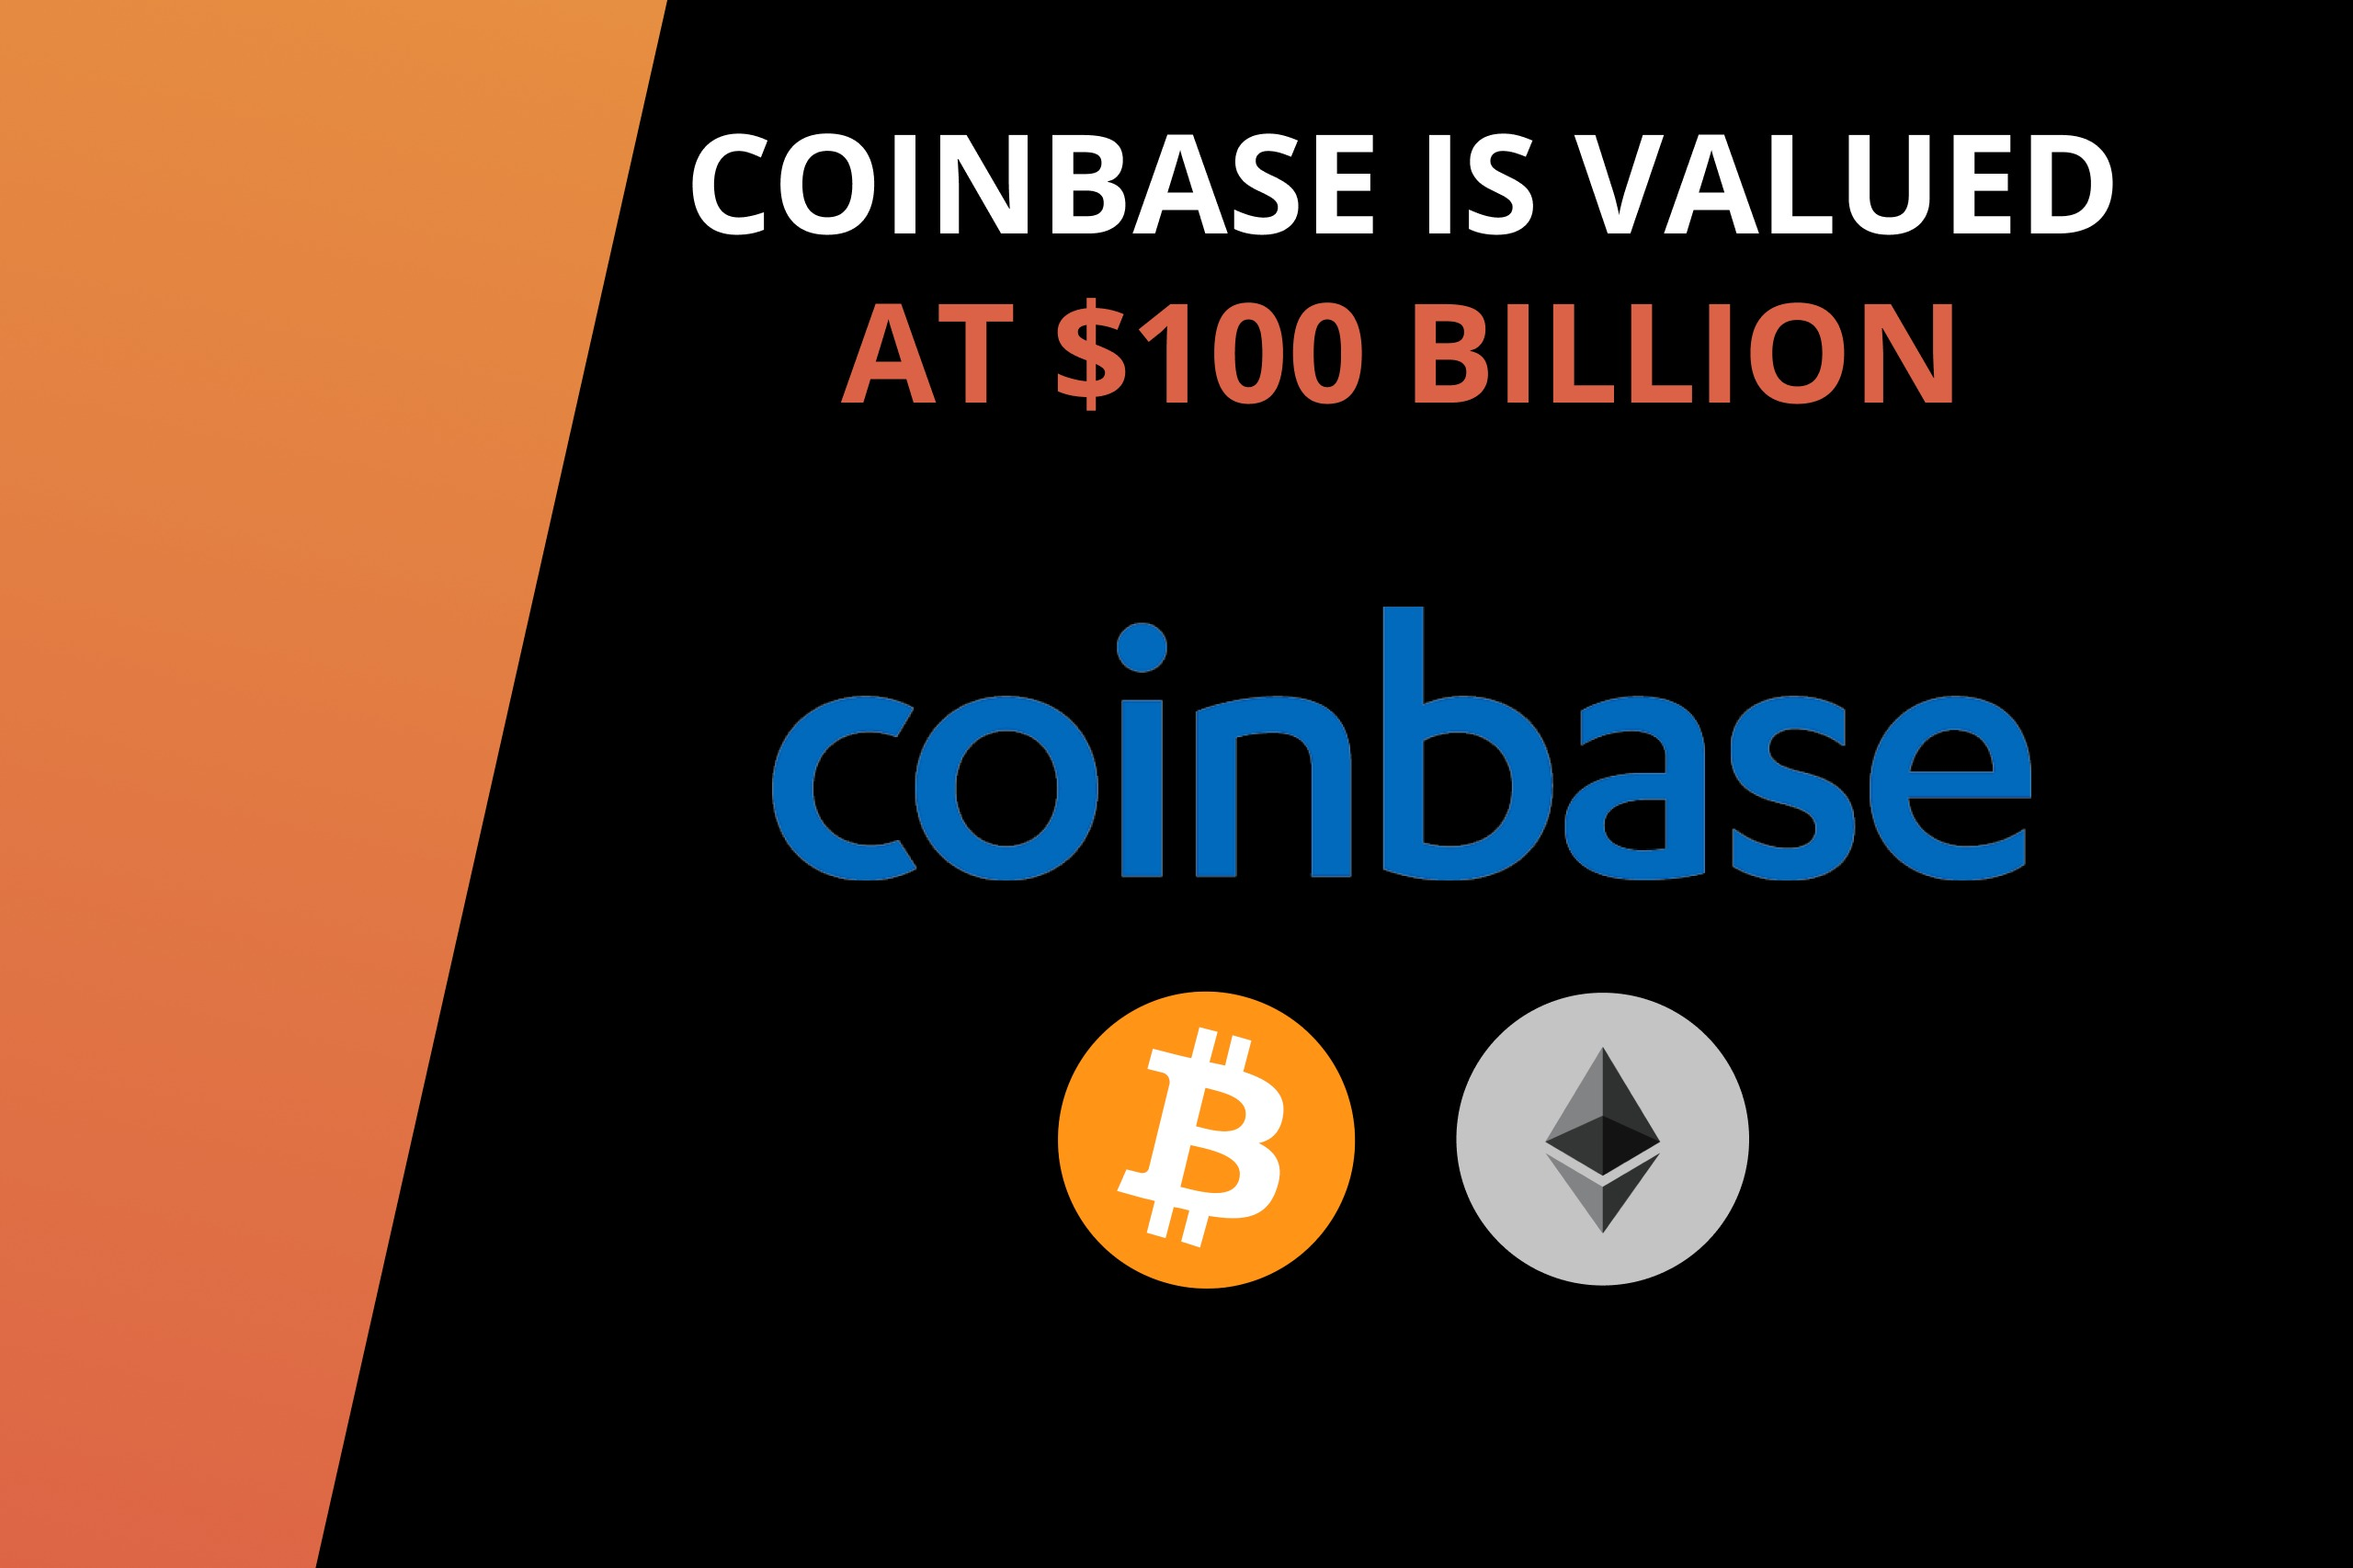 Coinbase is one of the most hotly anticipated IPO of 2021